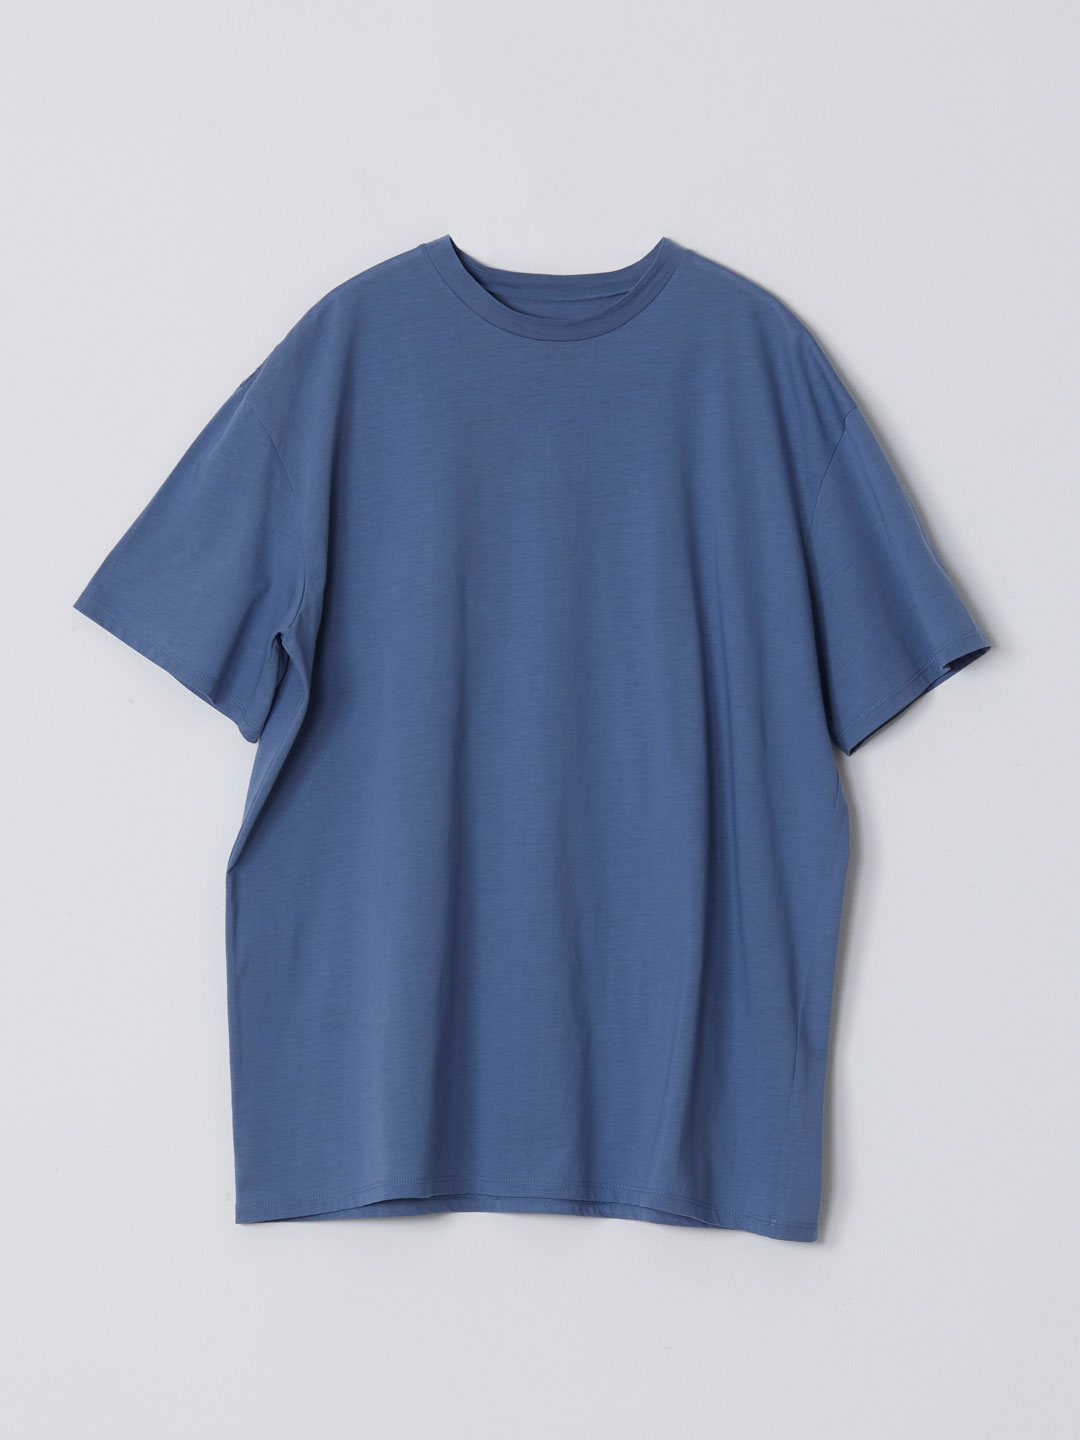 No 0235  High Gauge Cotton Tee - Sax